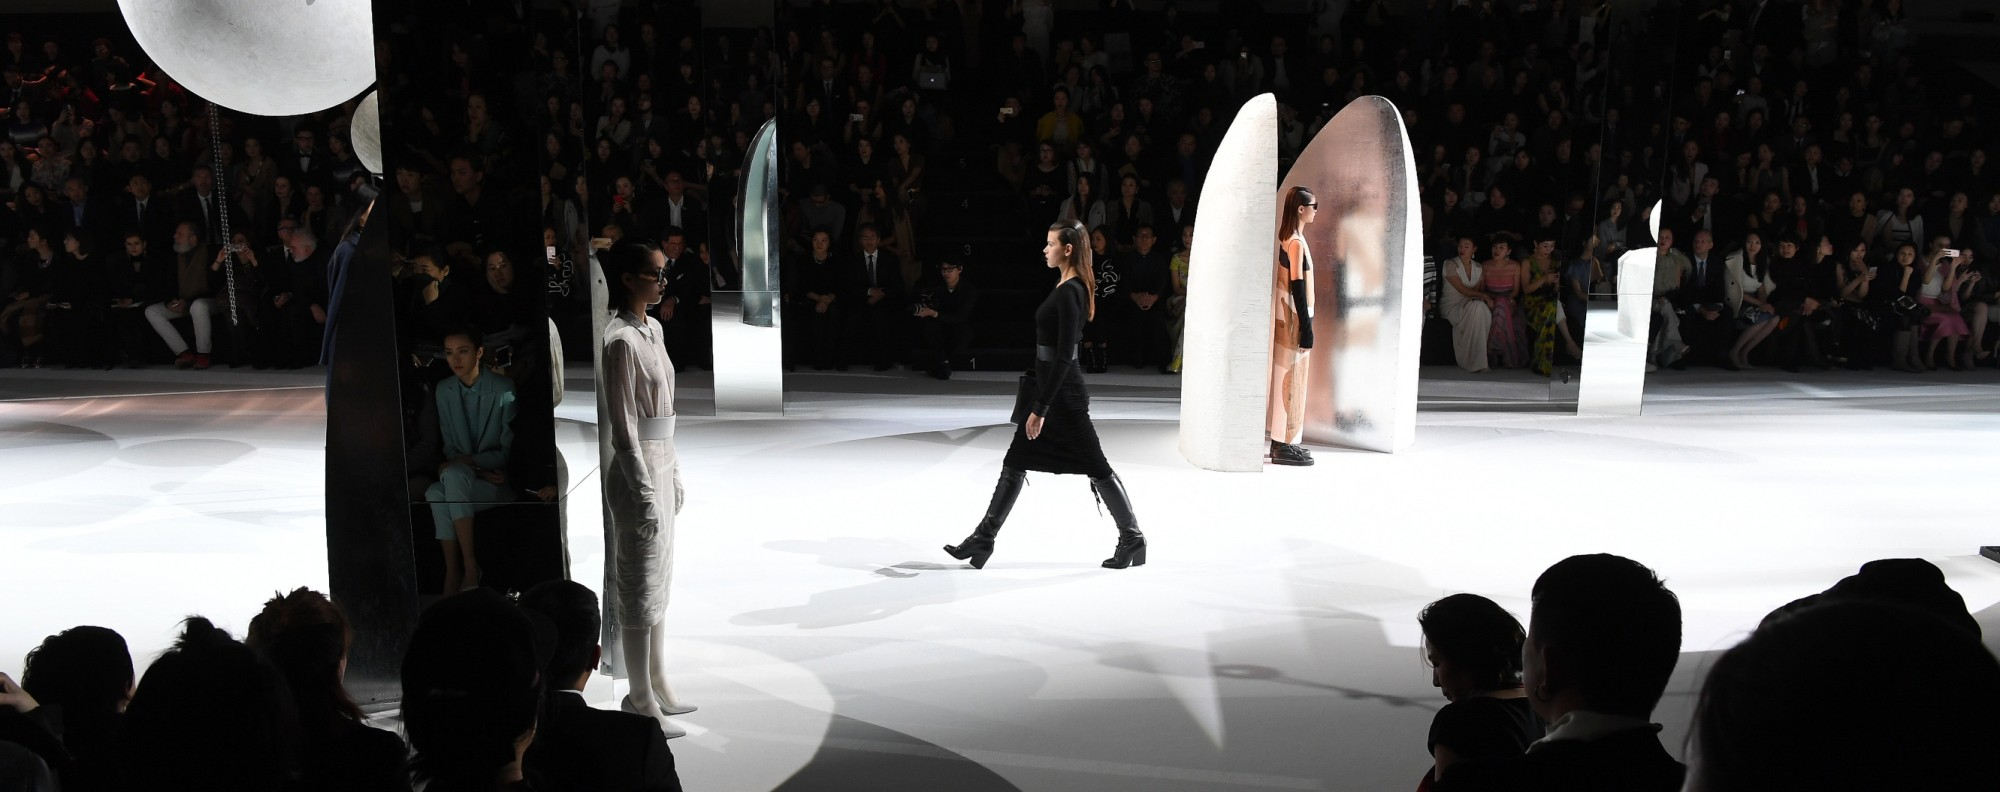 Chinese artist Liu Wei built the the runway set where Max Mara's autumn collection was showcased. The collection was inspired by the artist.